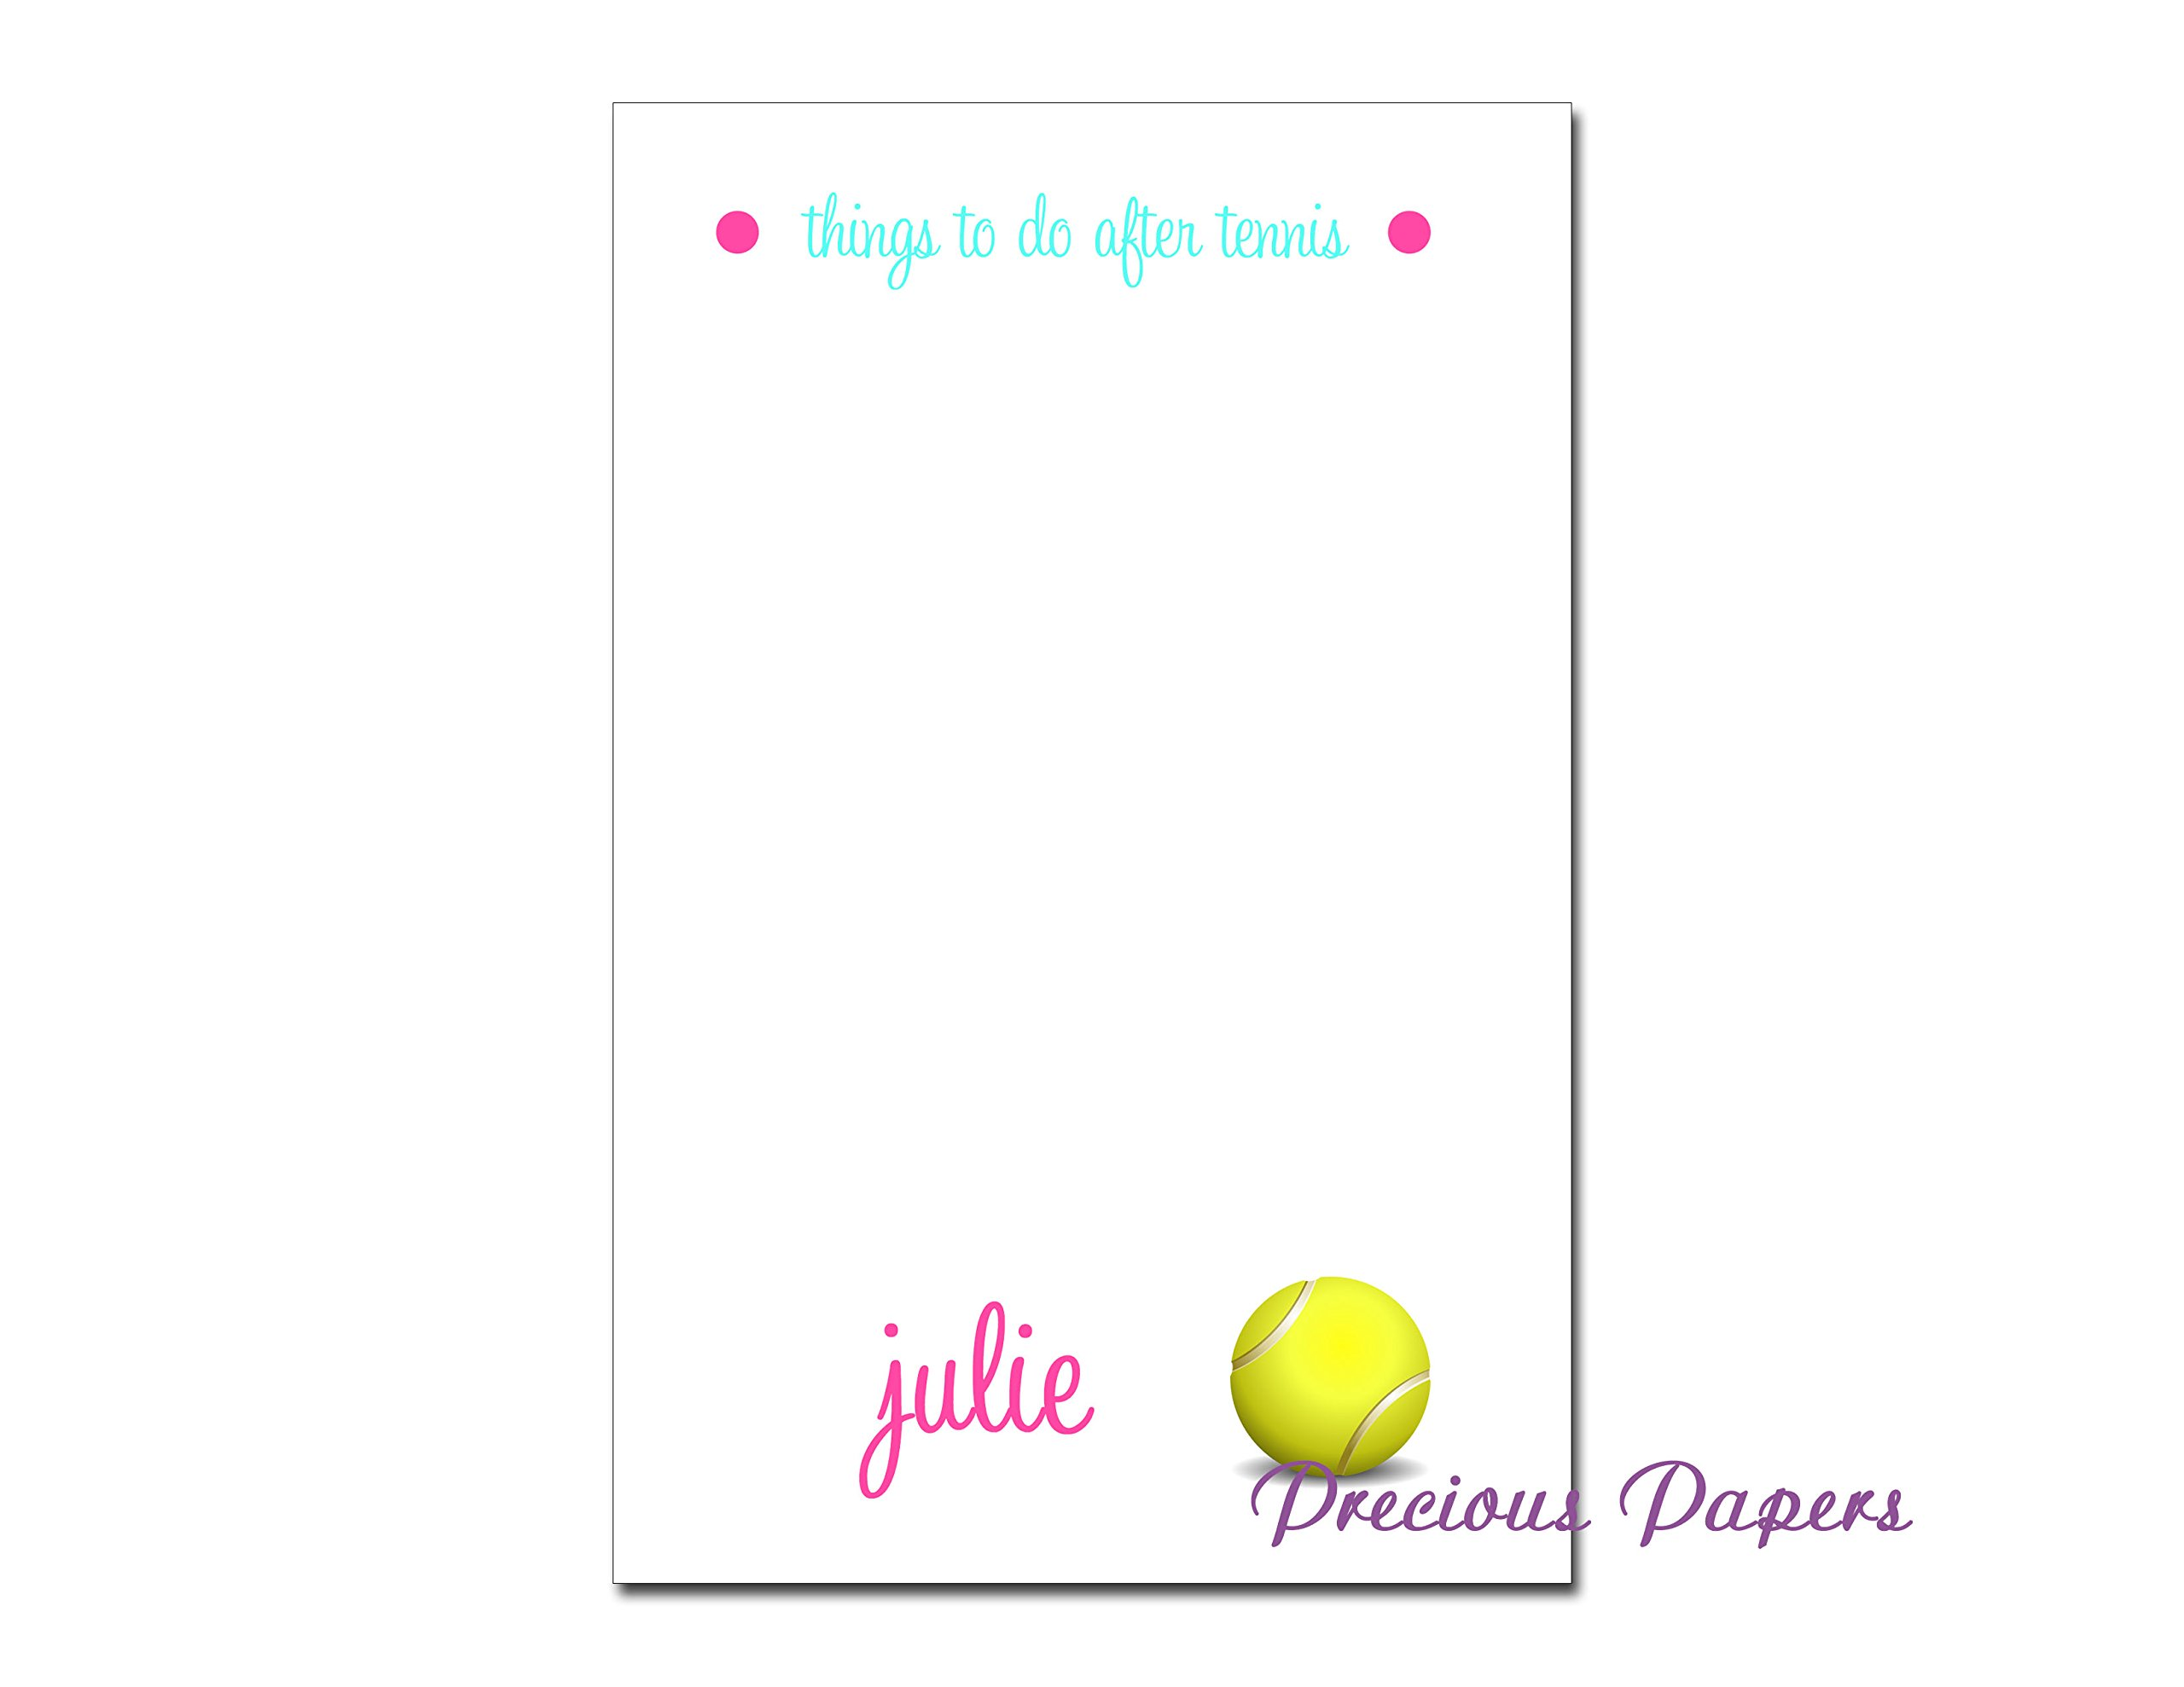 Personalized tennis note pad, tennis stationery, tennis notepad, ladies tennis gift